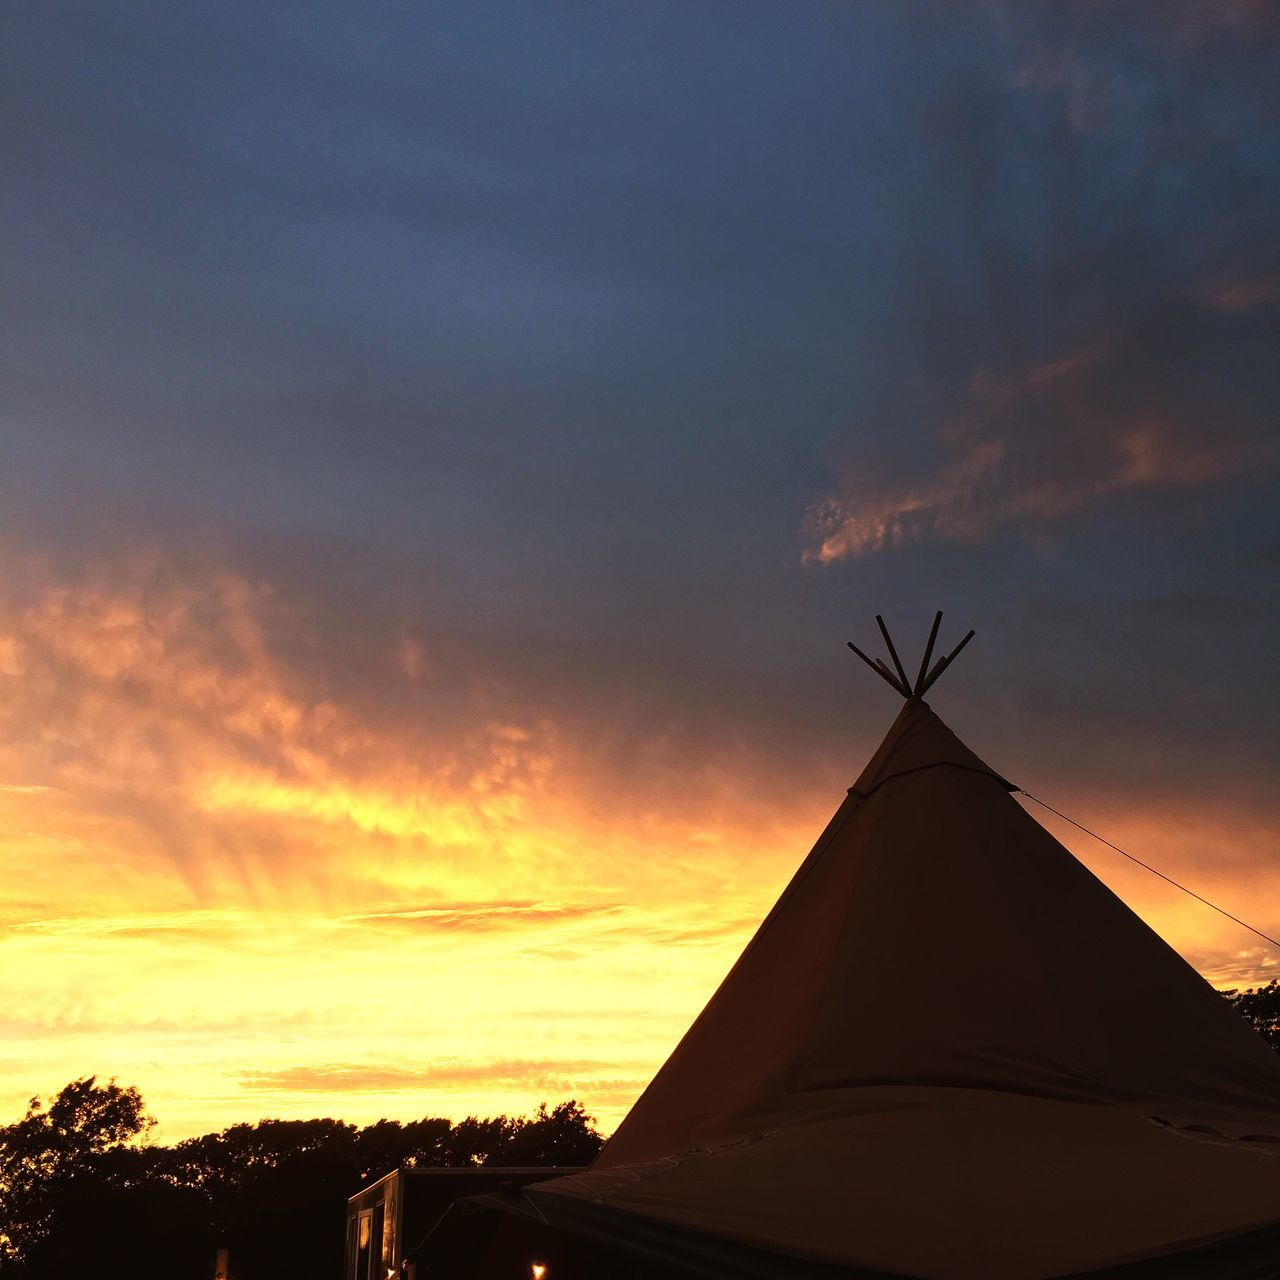 Wigwam Tents Sunset Summer Summer Evening British Summer Fire Sky Burning Sky Hot Summer Day England Glamping